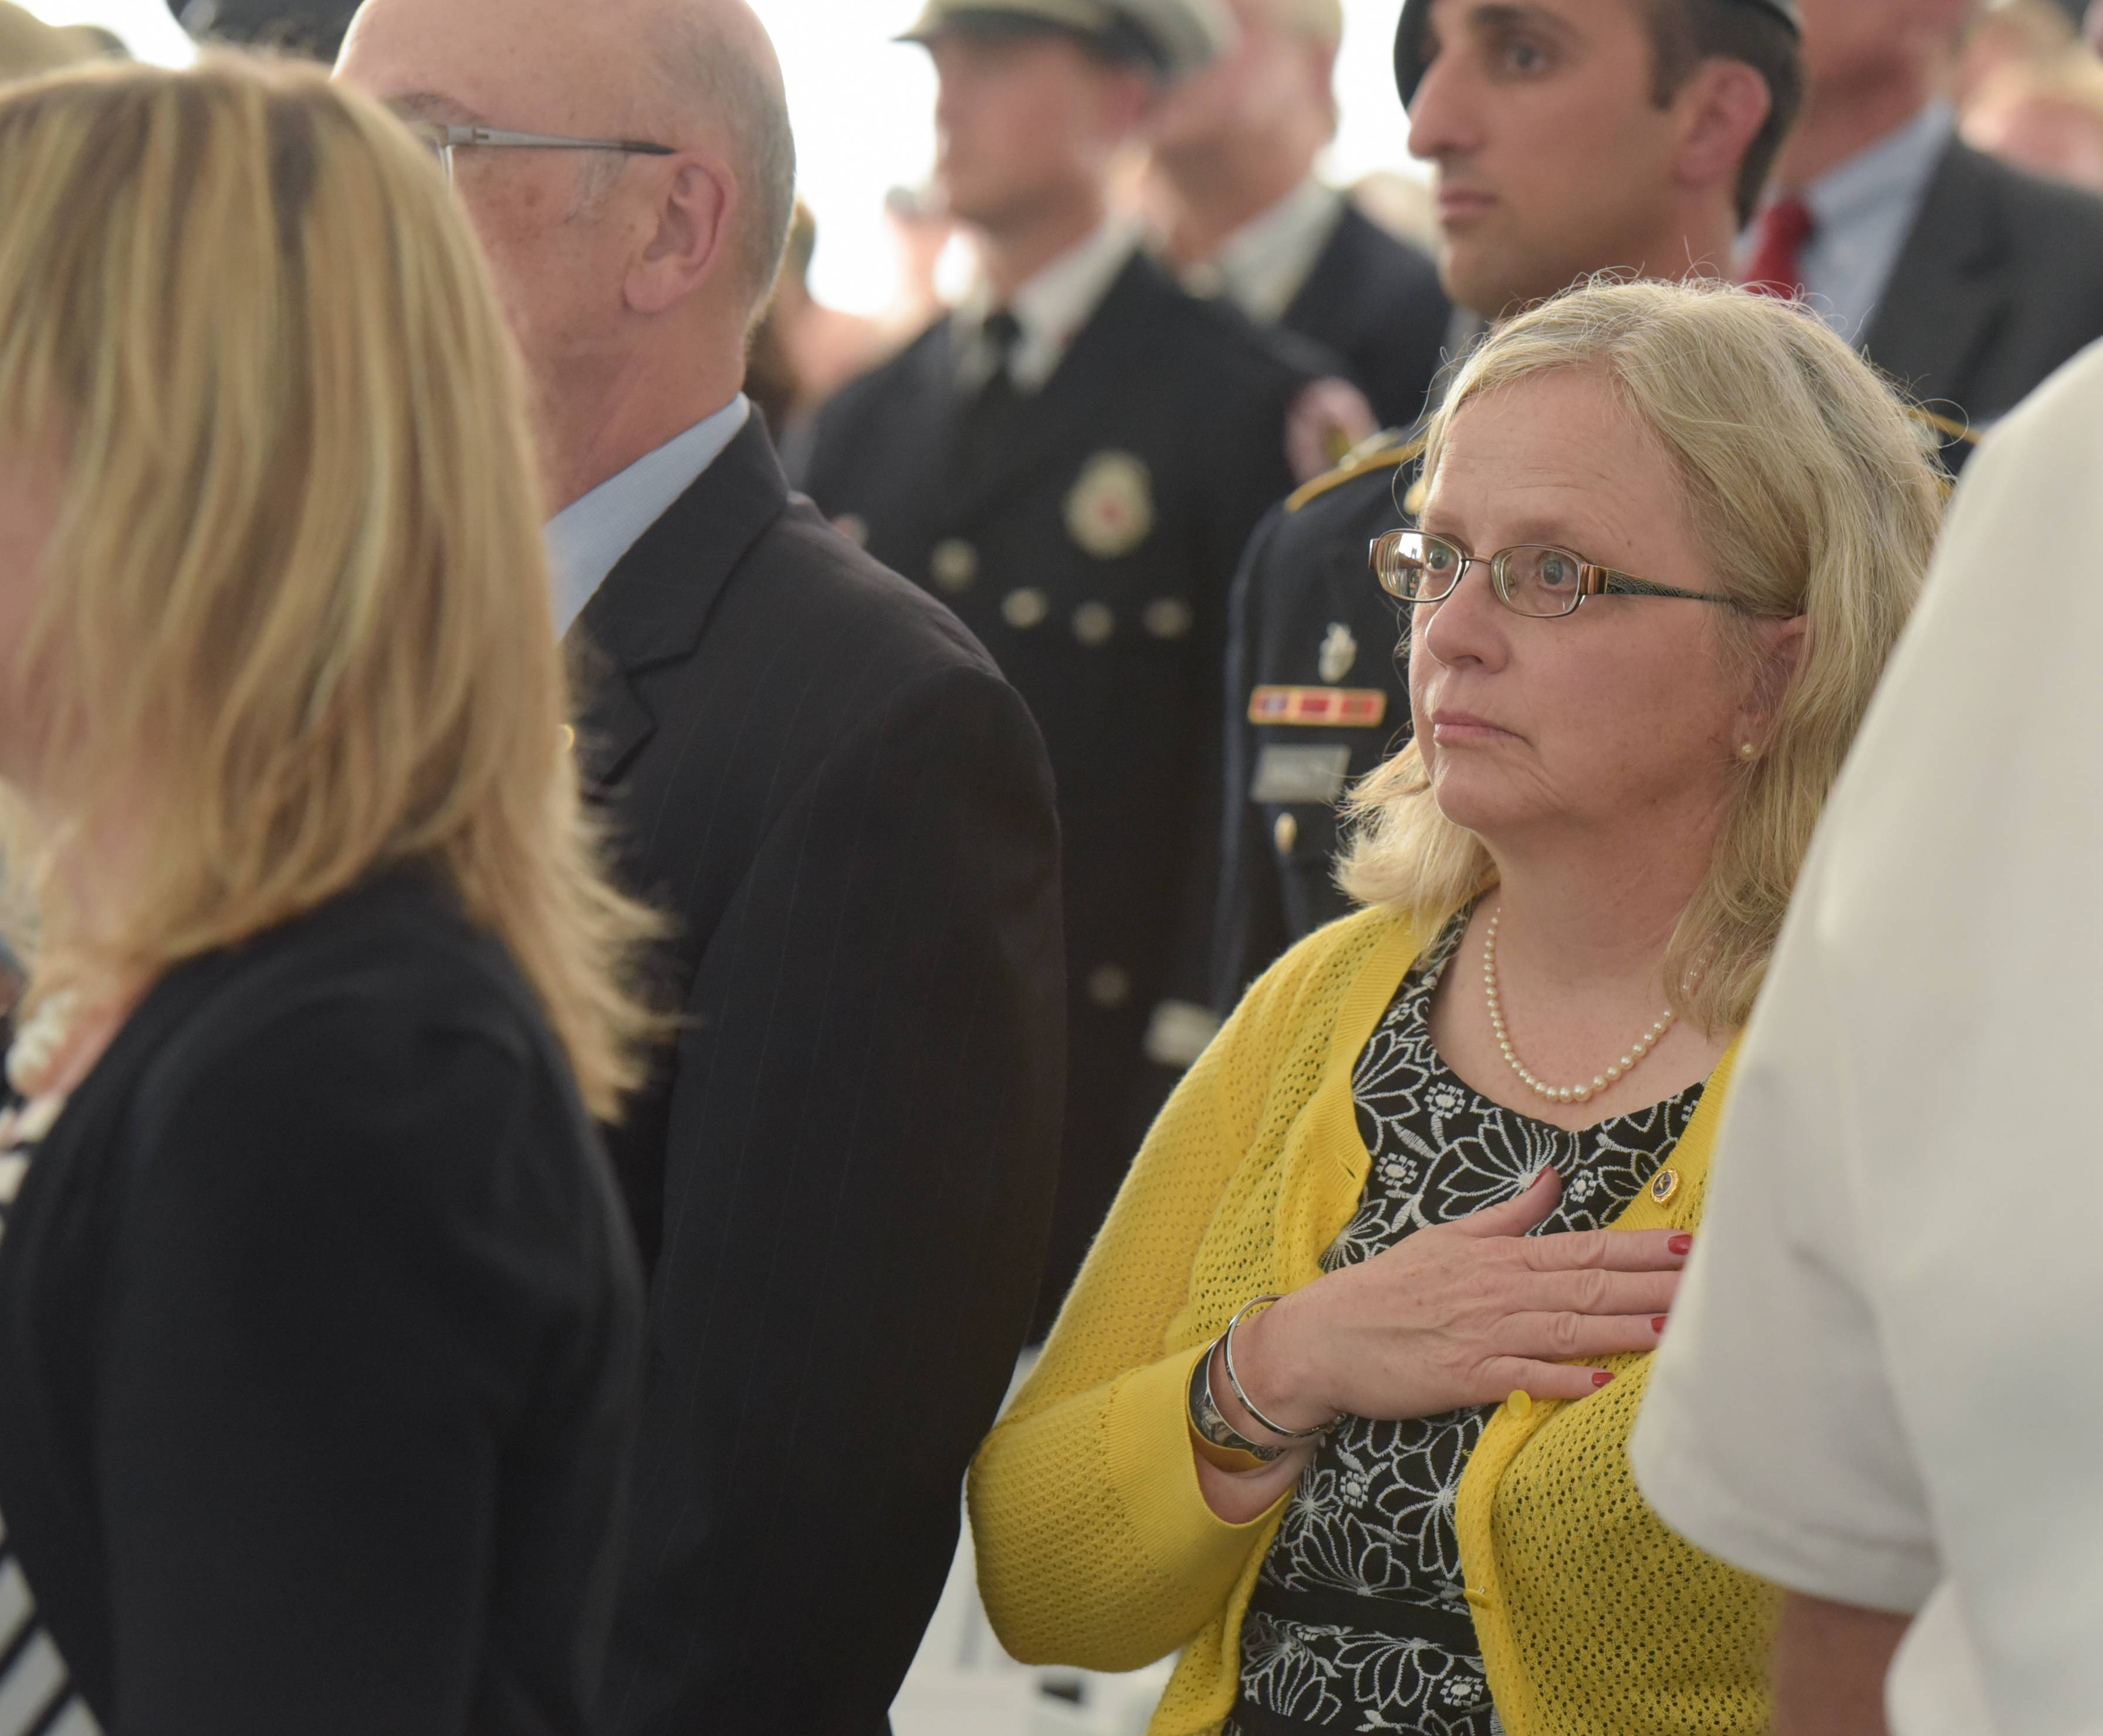 Maureen Miller stands for the national anthem at a ceremony Thursday to name the College of DuPage's Homeland Security Education Center on the Glen Ellyn campus after her son, U.S. Army Staff Sgt. Robert Miller, a Wheaton native who was killed in Afghanistan.